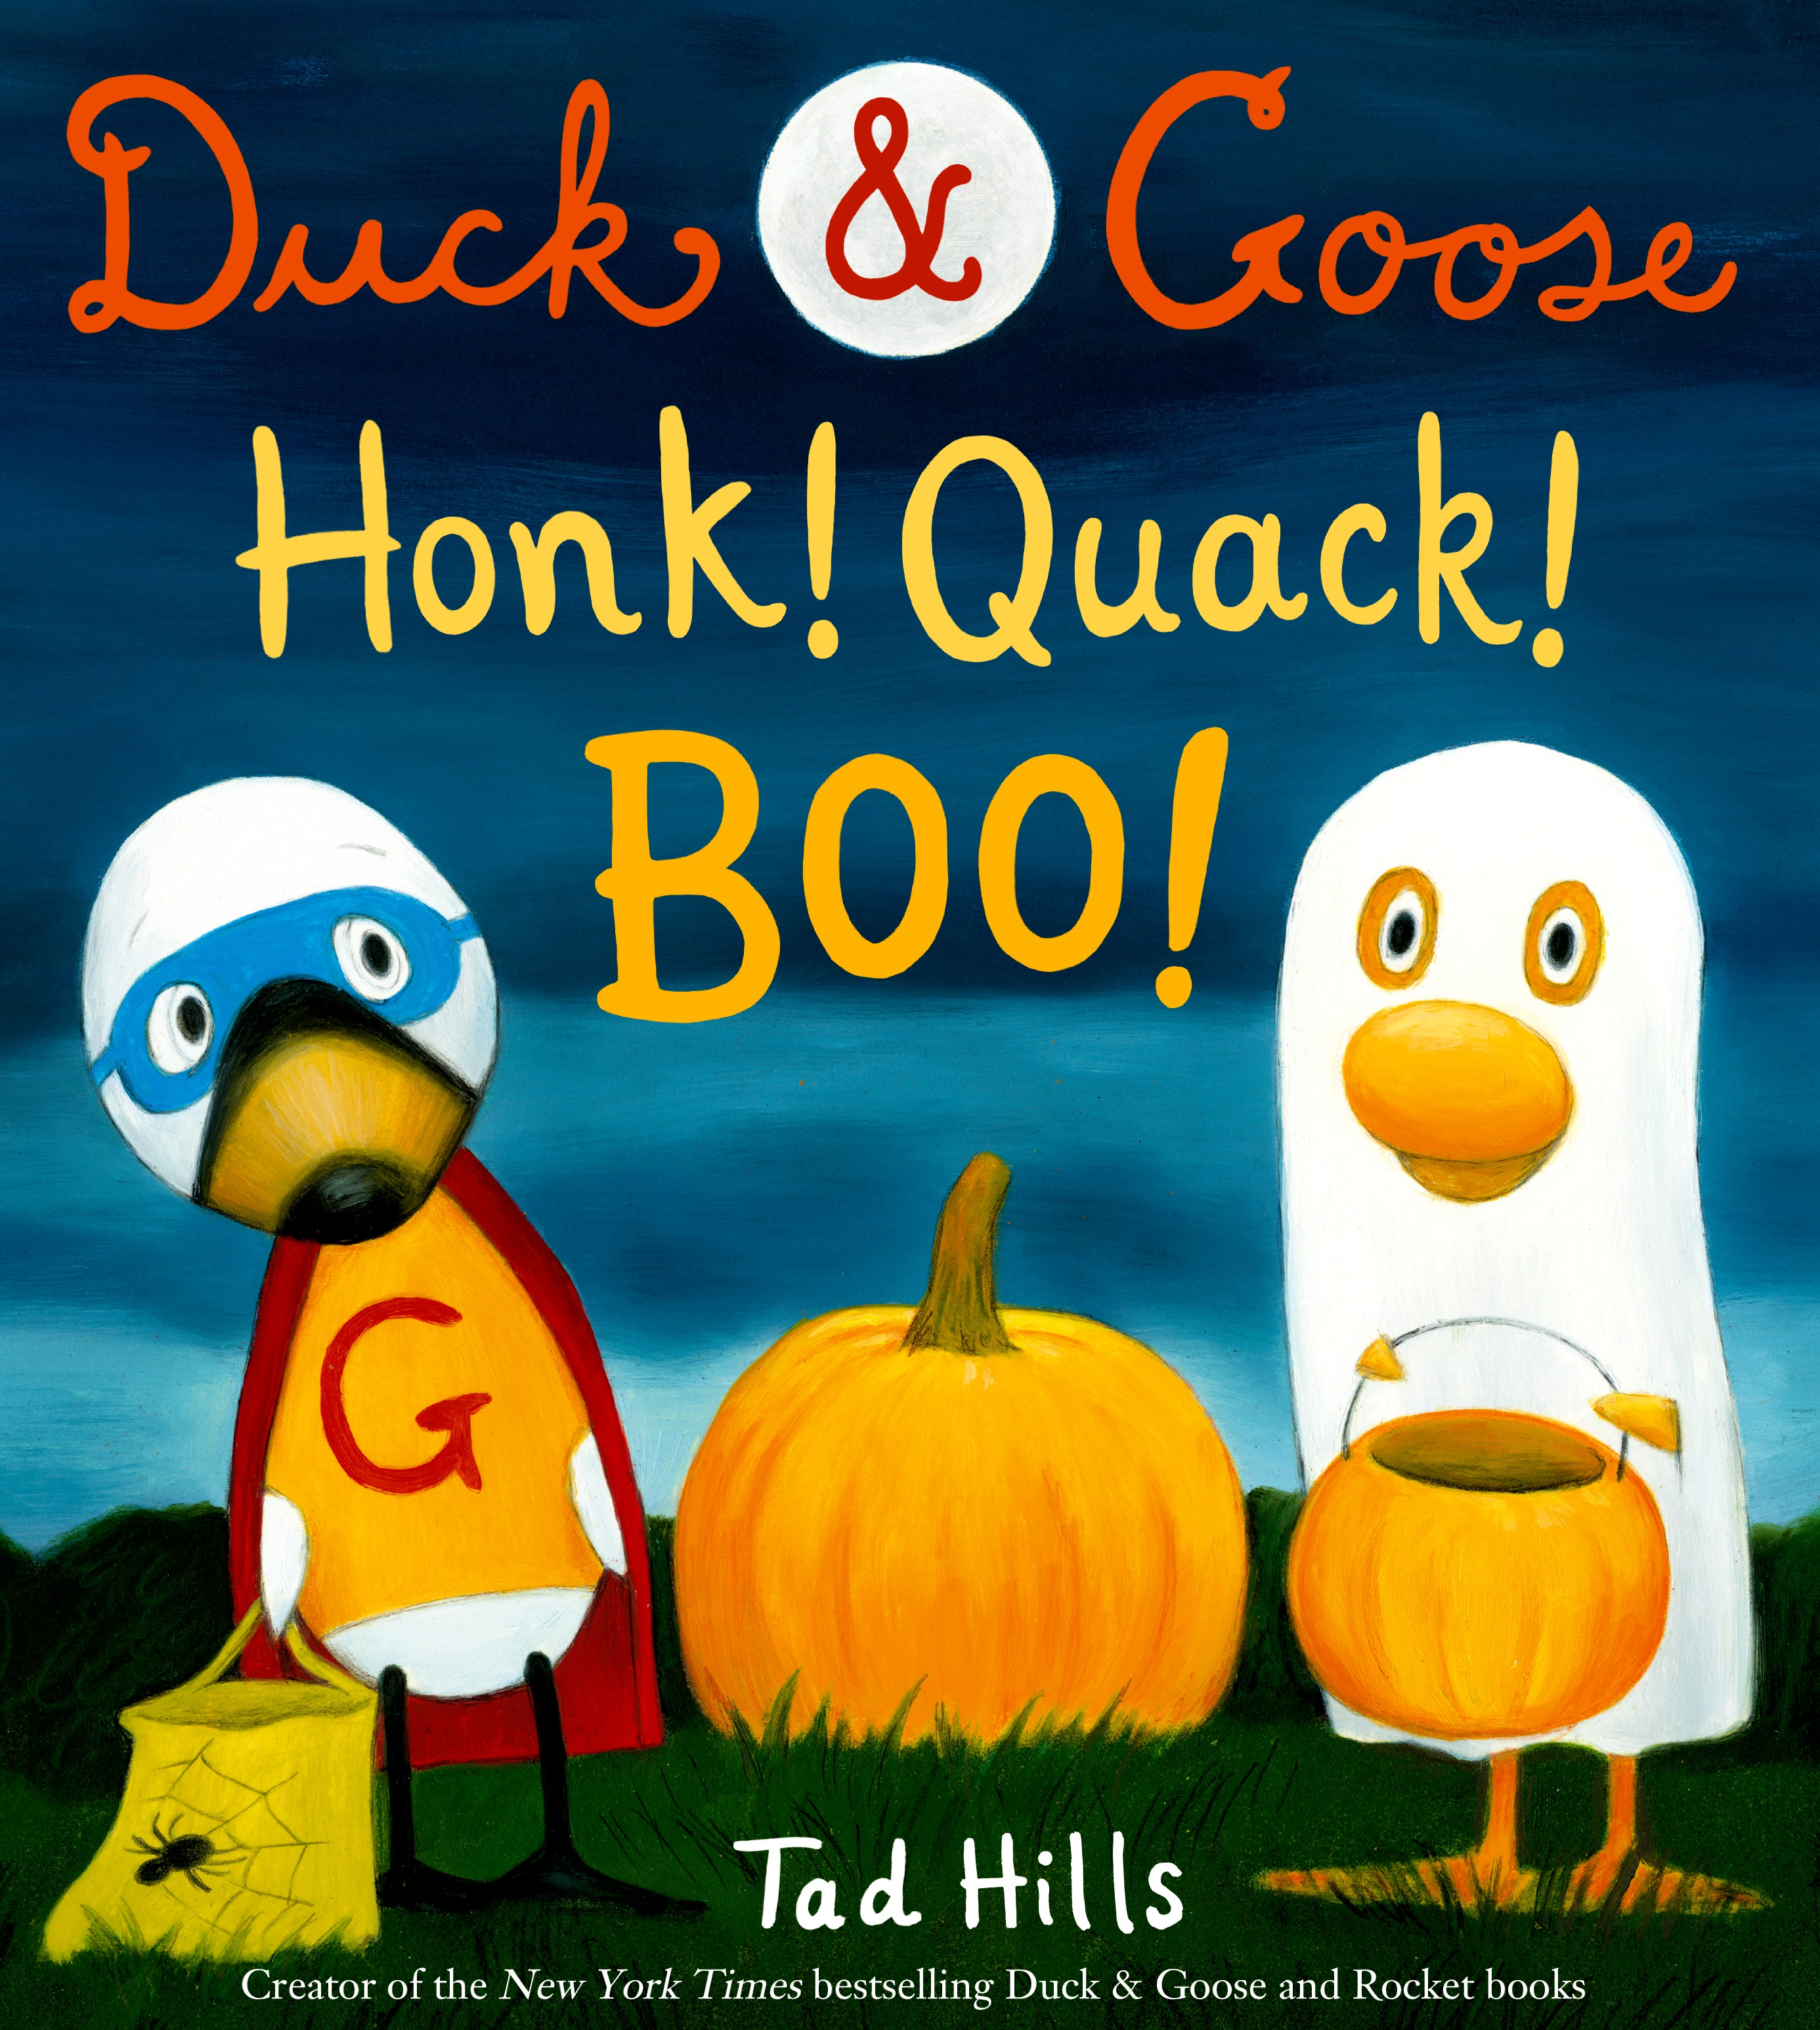 Sunday Halloween Story Time with Tad Hills (Author & Illustrator of Duck & Goose: HONK! QUACK! BOO!)